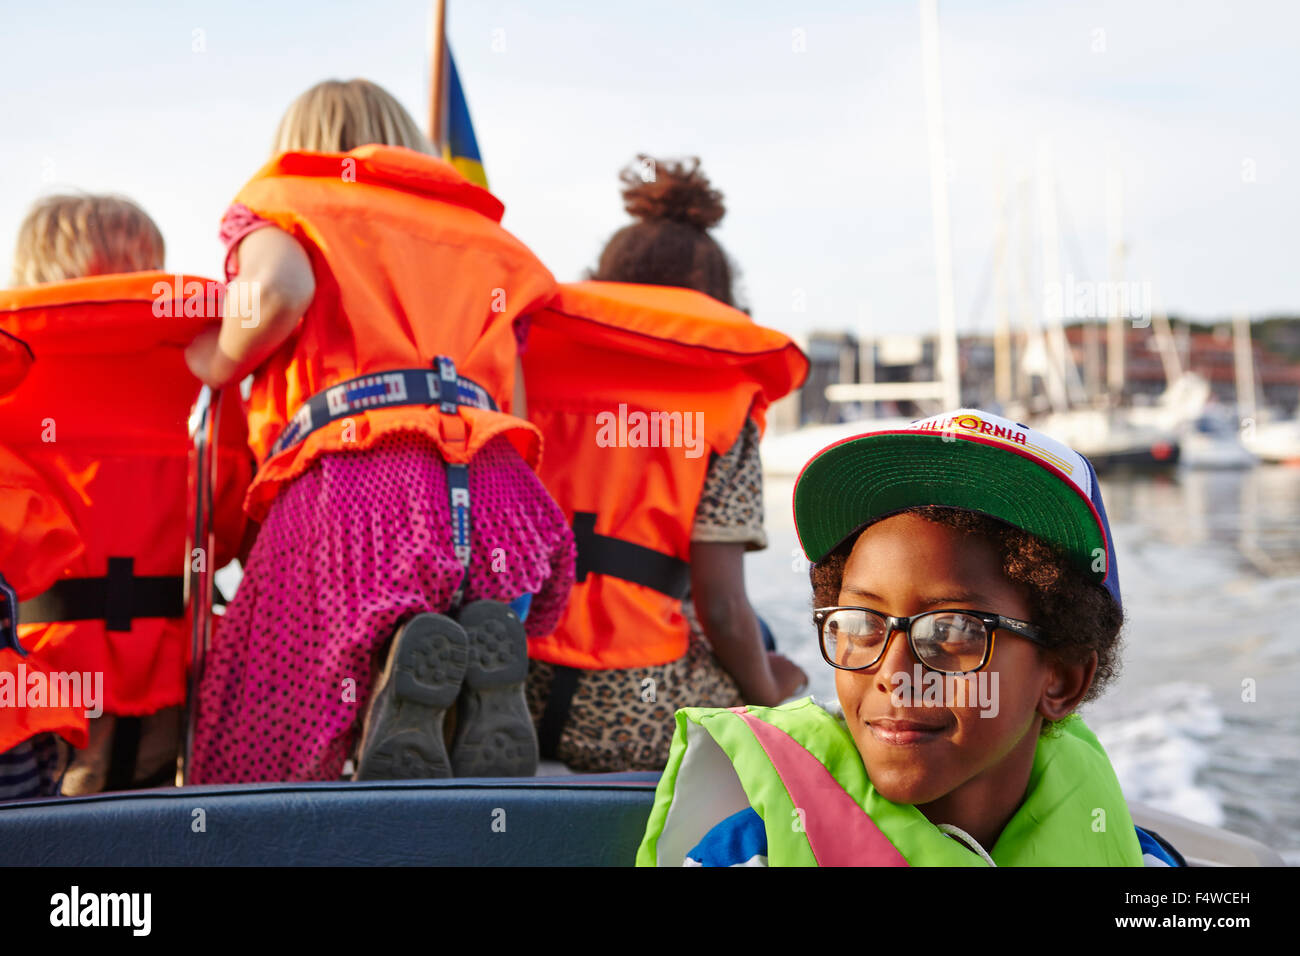 Children (6-7, 10-11) on tour boat - Stock Image